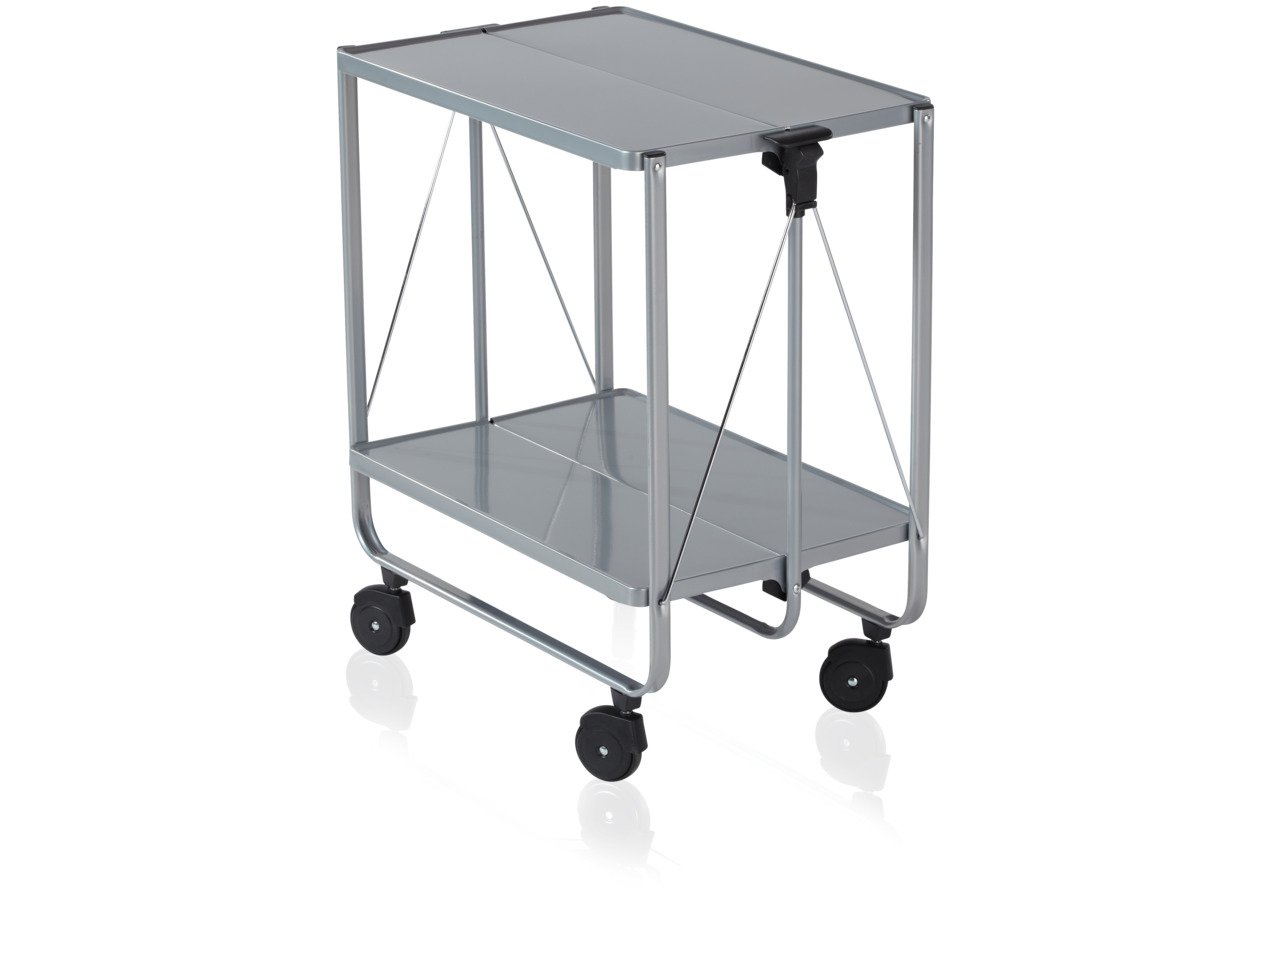 Leifheit Side Car Collapsible Serving and Equipment Trolley - Silver 74291